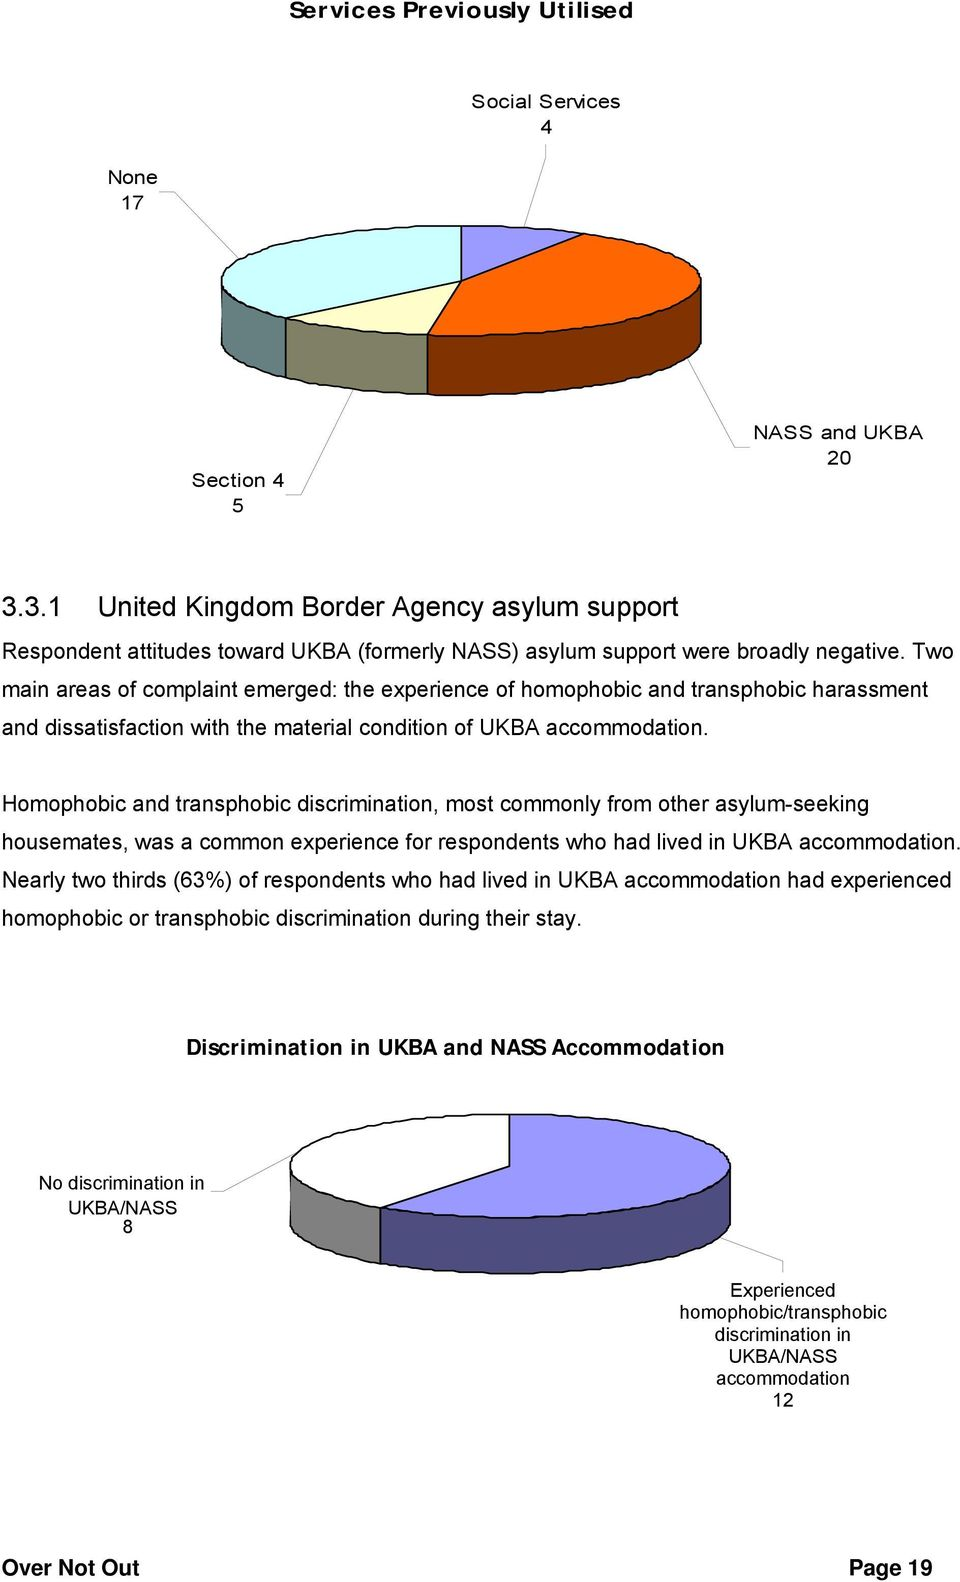 Two main areas of complaint emerged: the experience of homophobic and transphobic harassment and dissatisfaction with the material condition of UKBA accommodation.